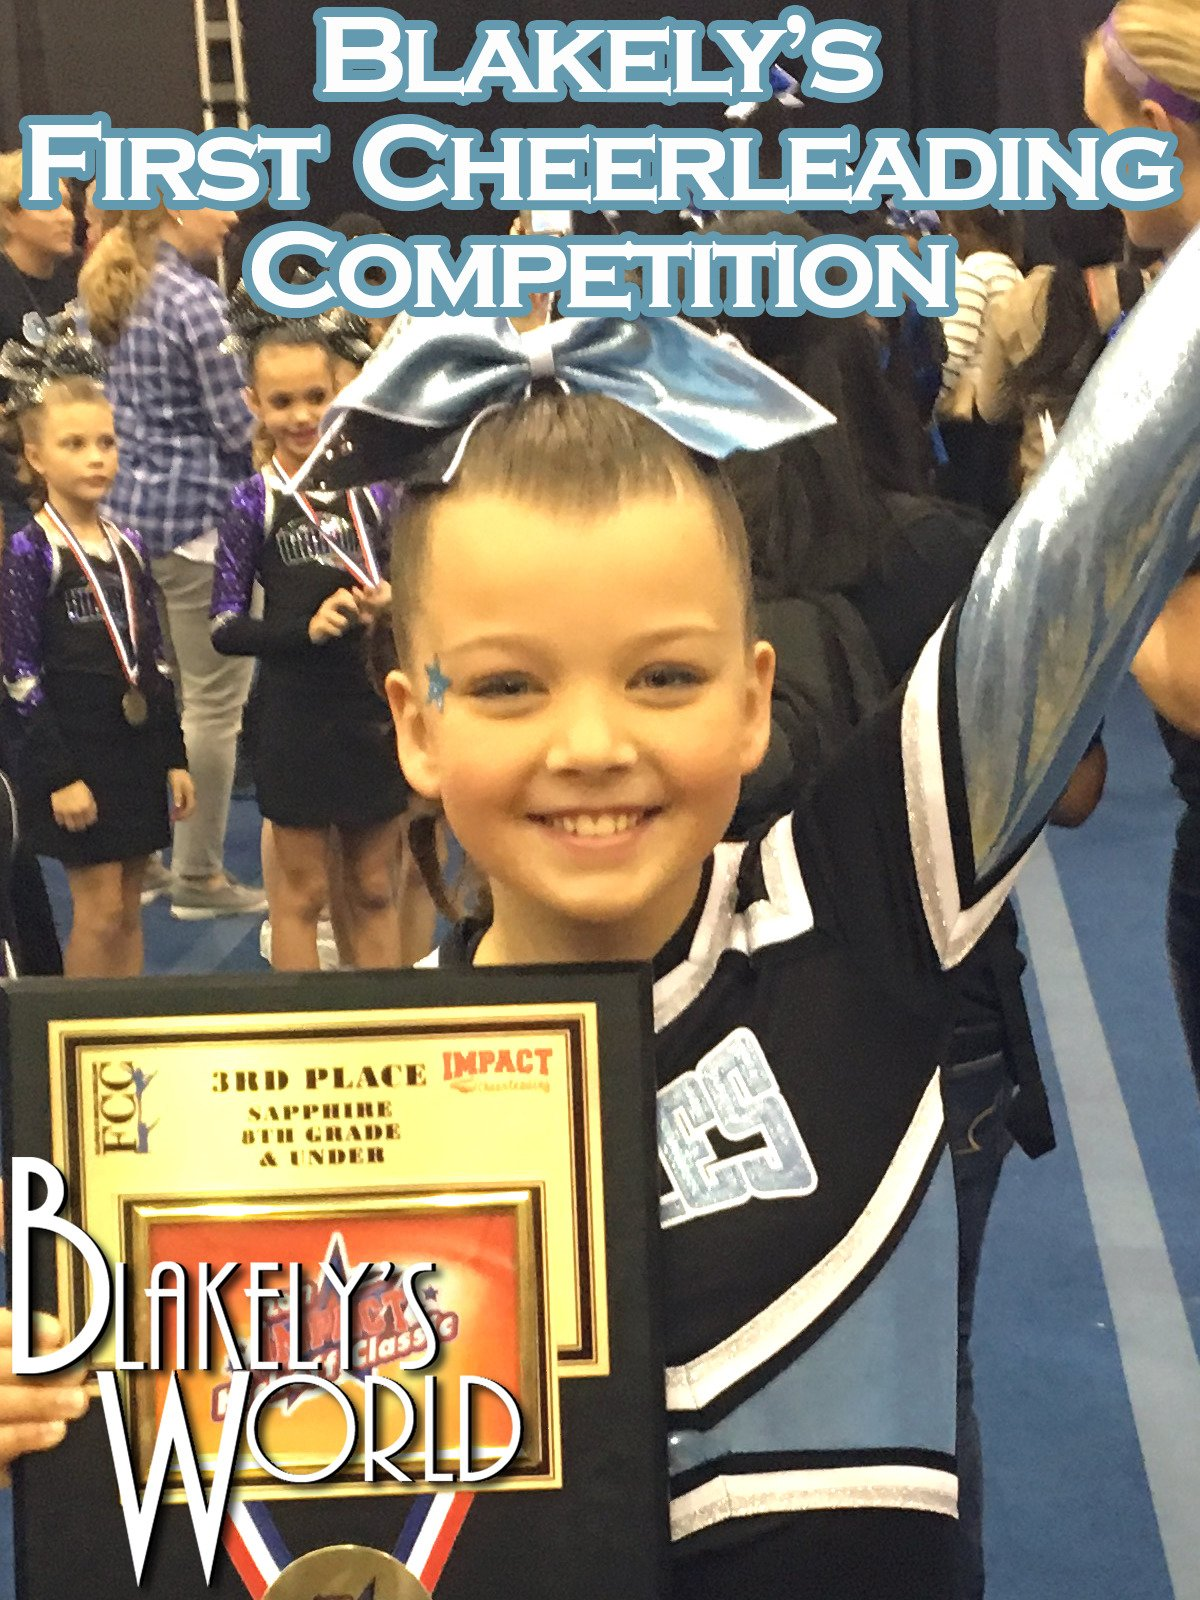 Blakely's First Cheerleading Competition